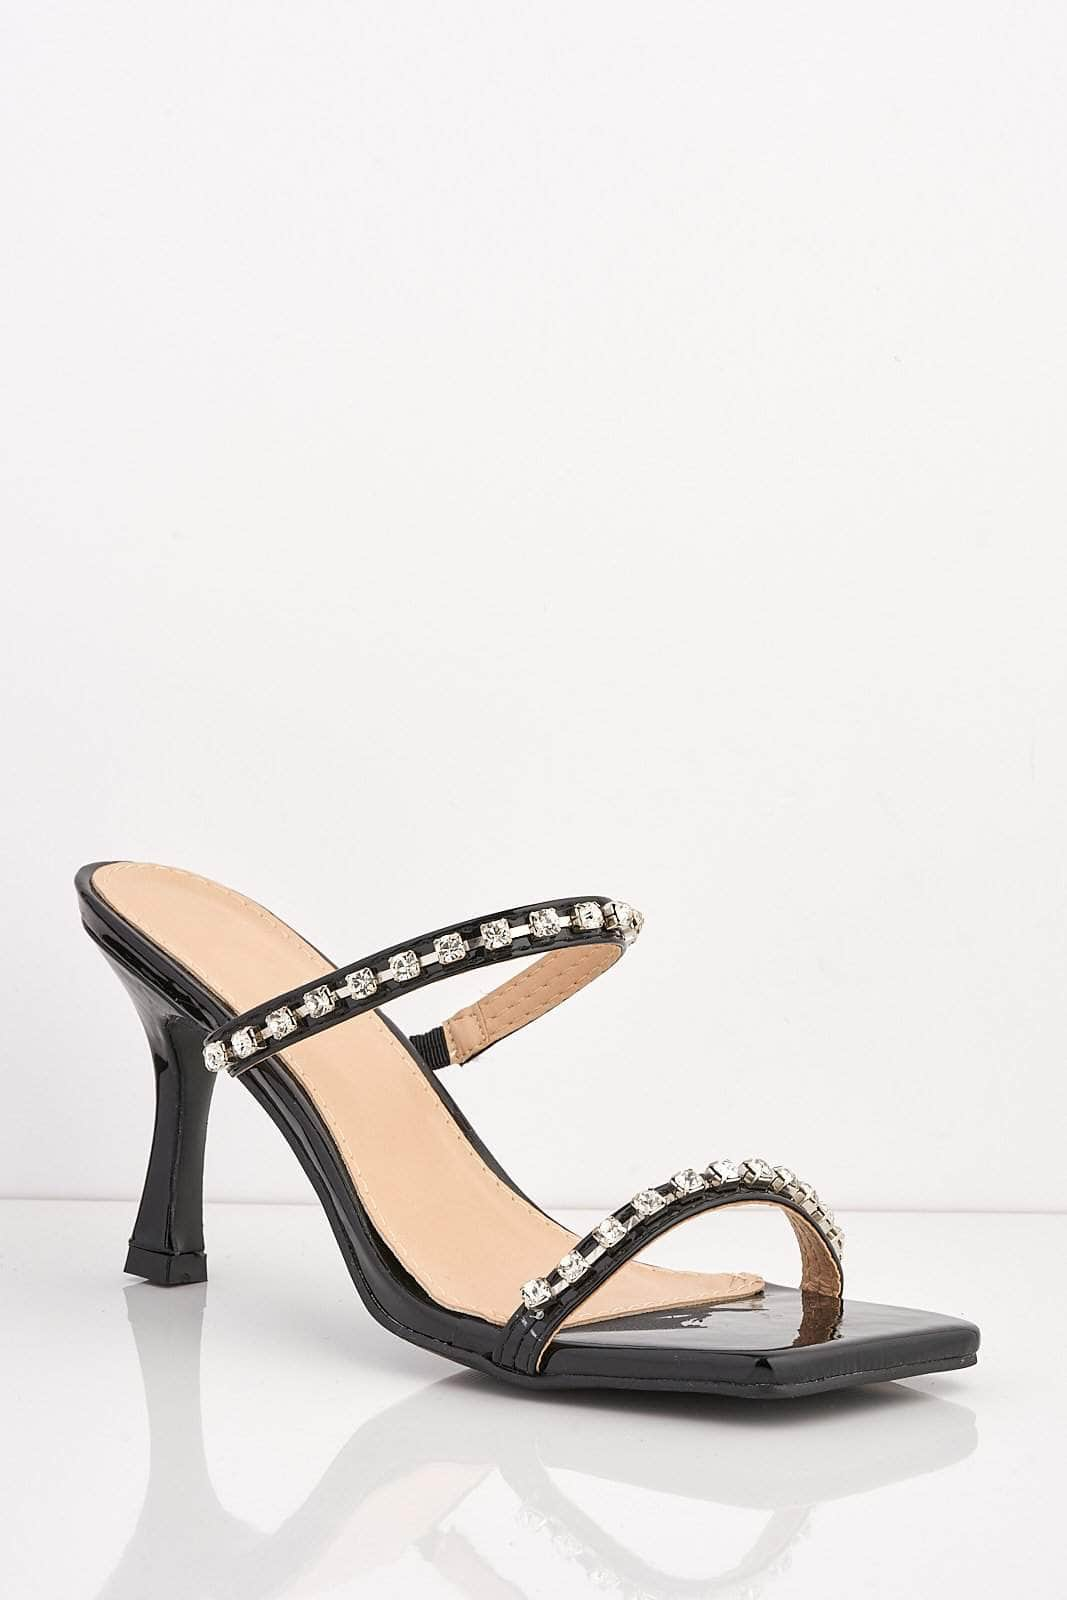 Black Patent Square Diamante Kitten Heels